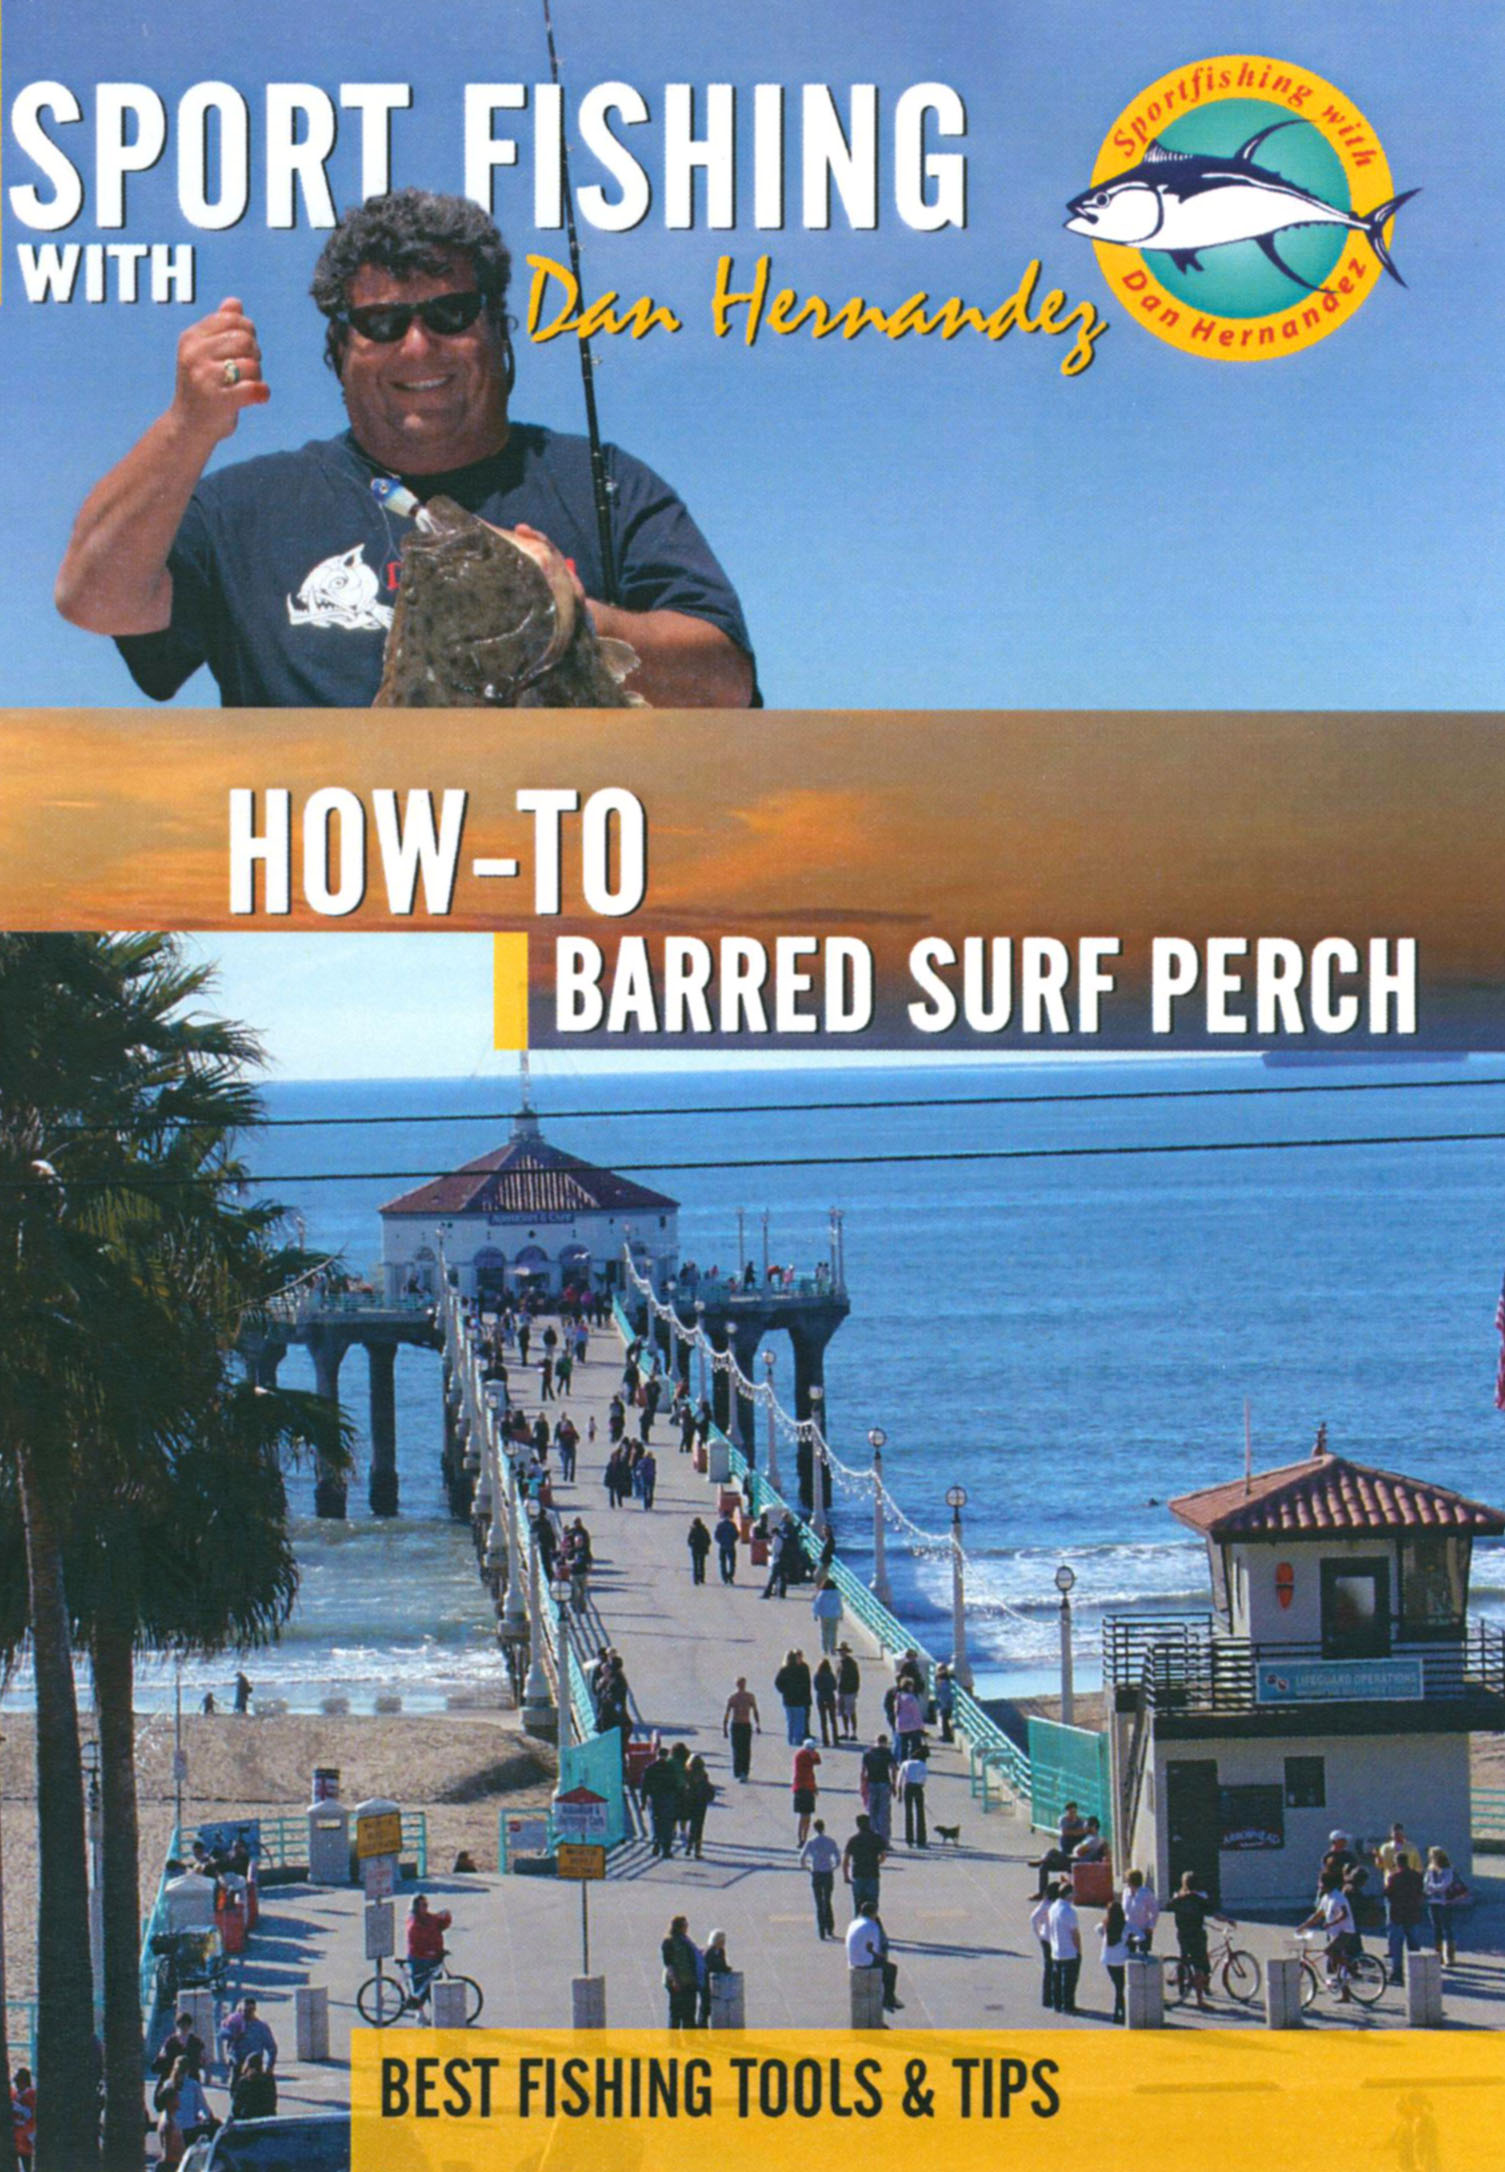 Sport Fishing With Dan Hernandez: How-To Barred Surf Perch